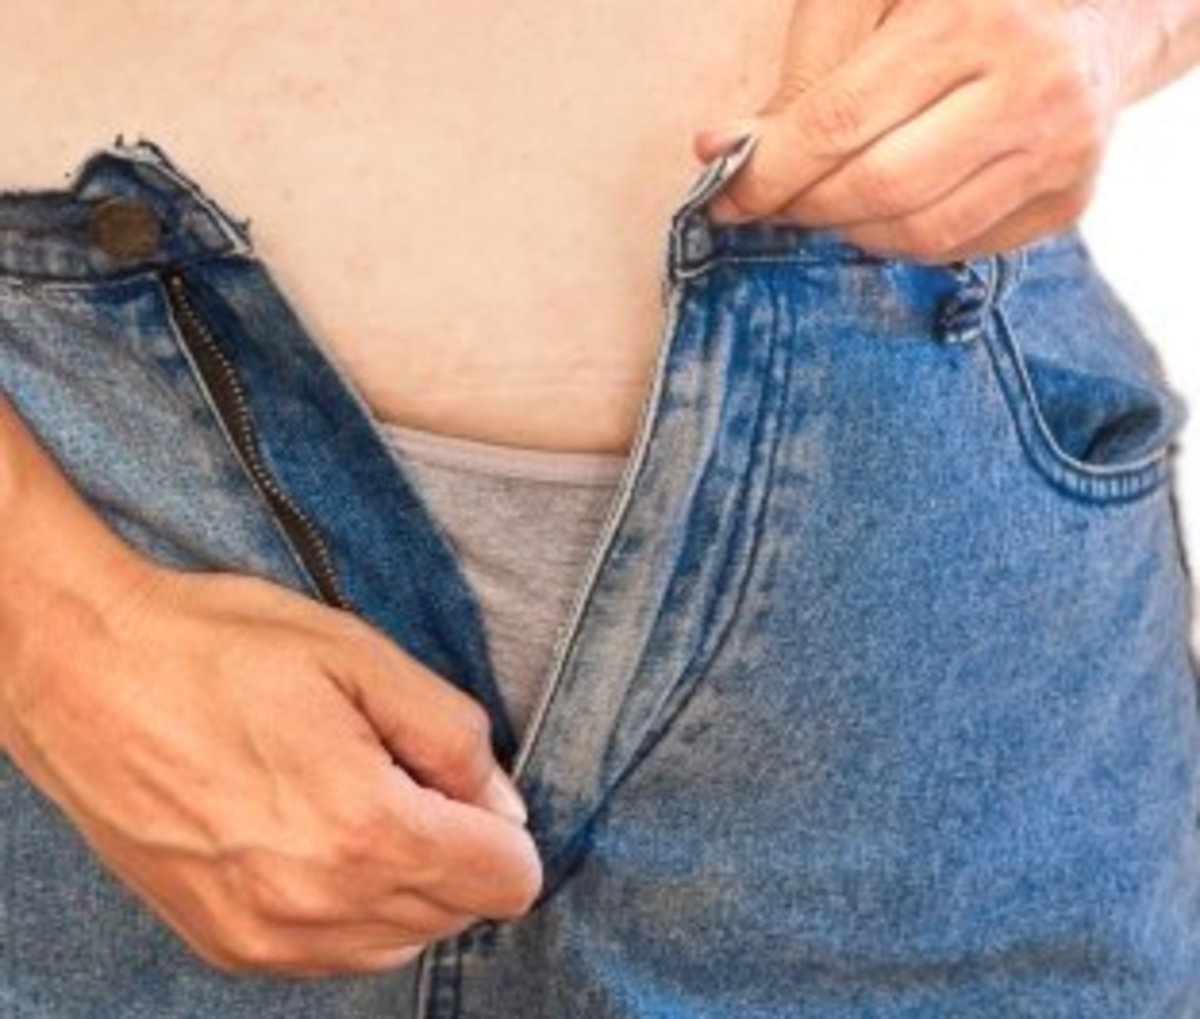 Gift your partner a pair of jeans that are actually a size smaller. Pretend that you weren't aware that his or her size had gone up recently.